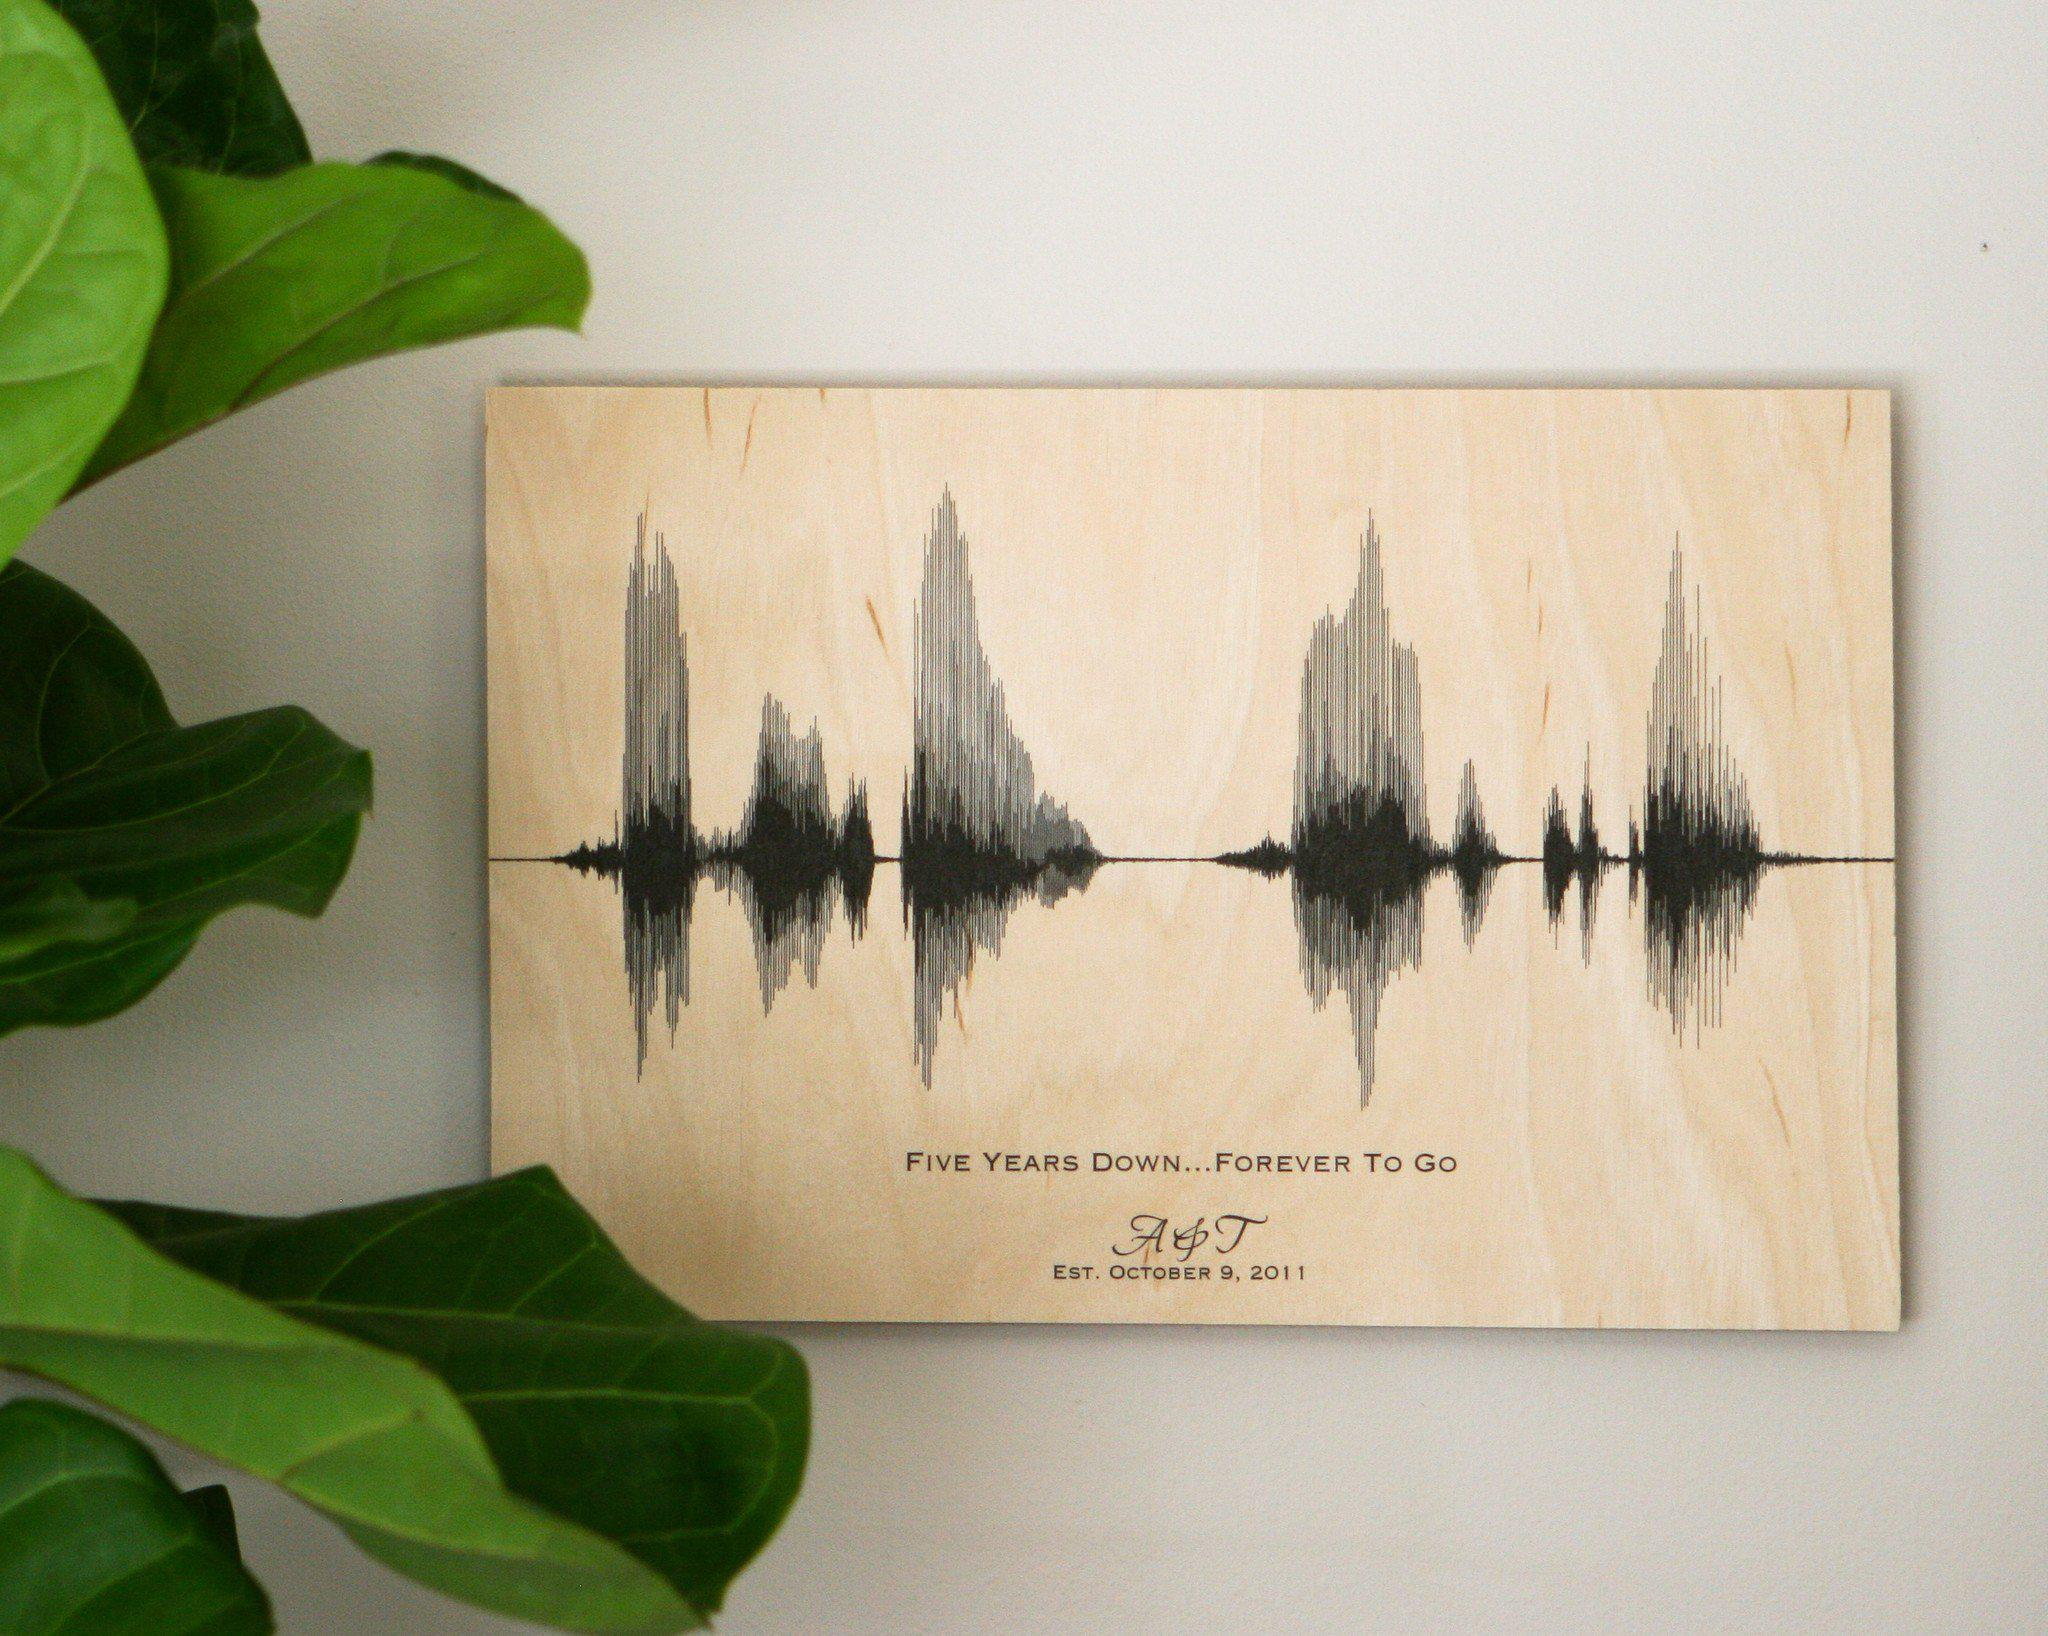 5 Year Wedding Anniversary Gifts on Wood, Personalized Sound Wave Art - Artsy Voiceprint